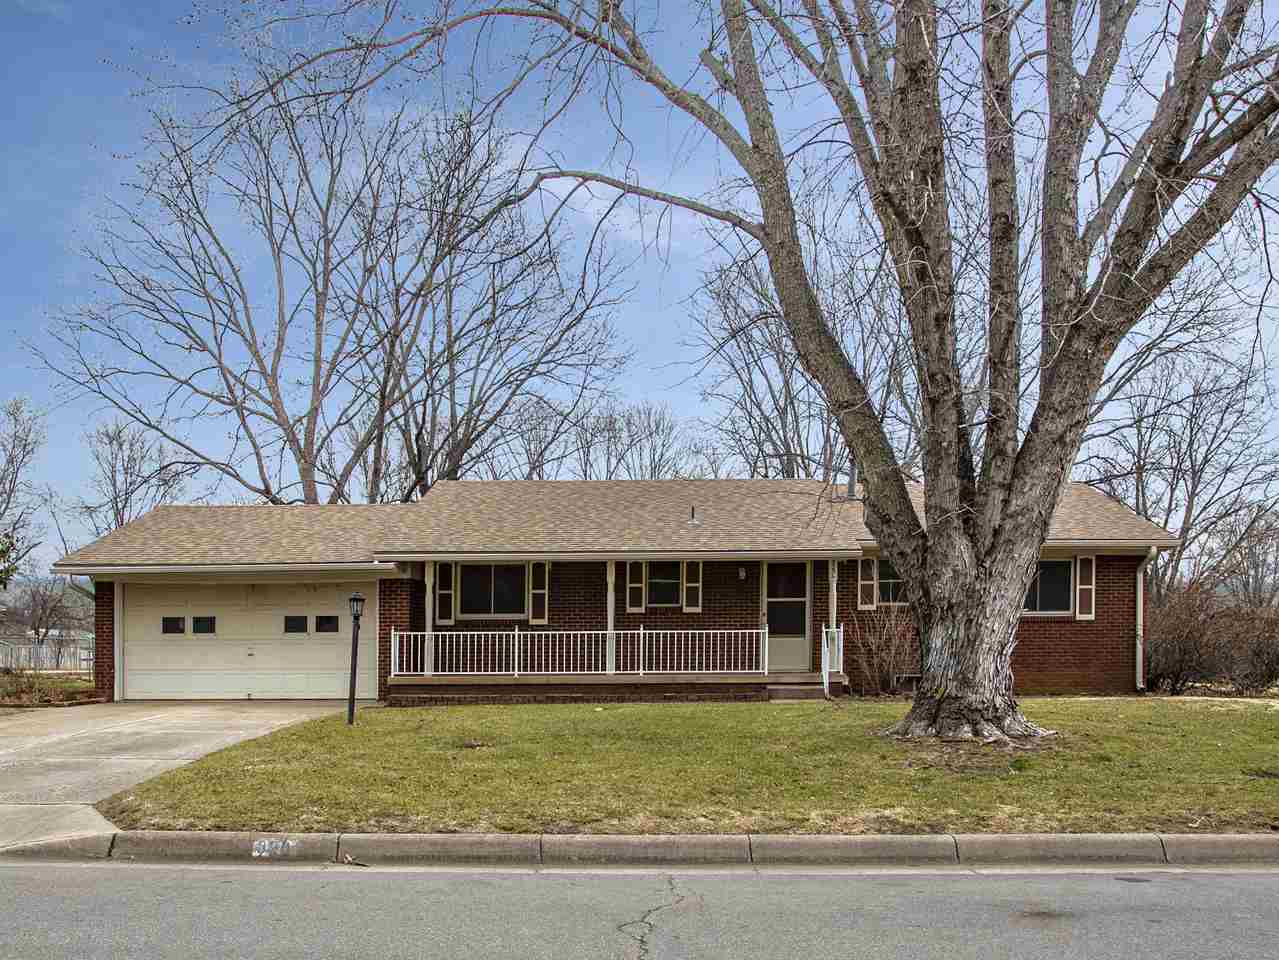 320 S 1st St, Clearwater, KS, 67026